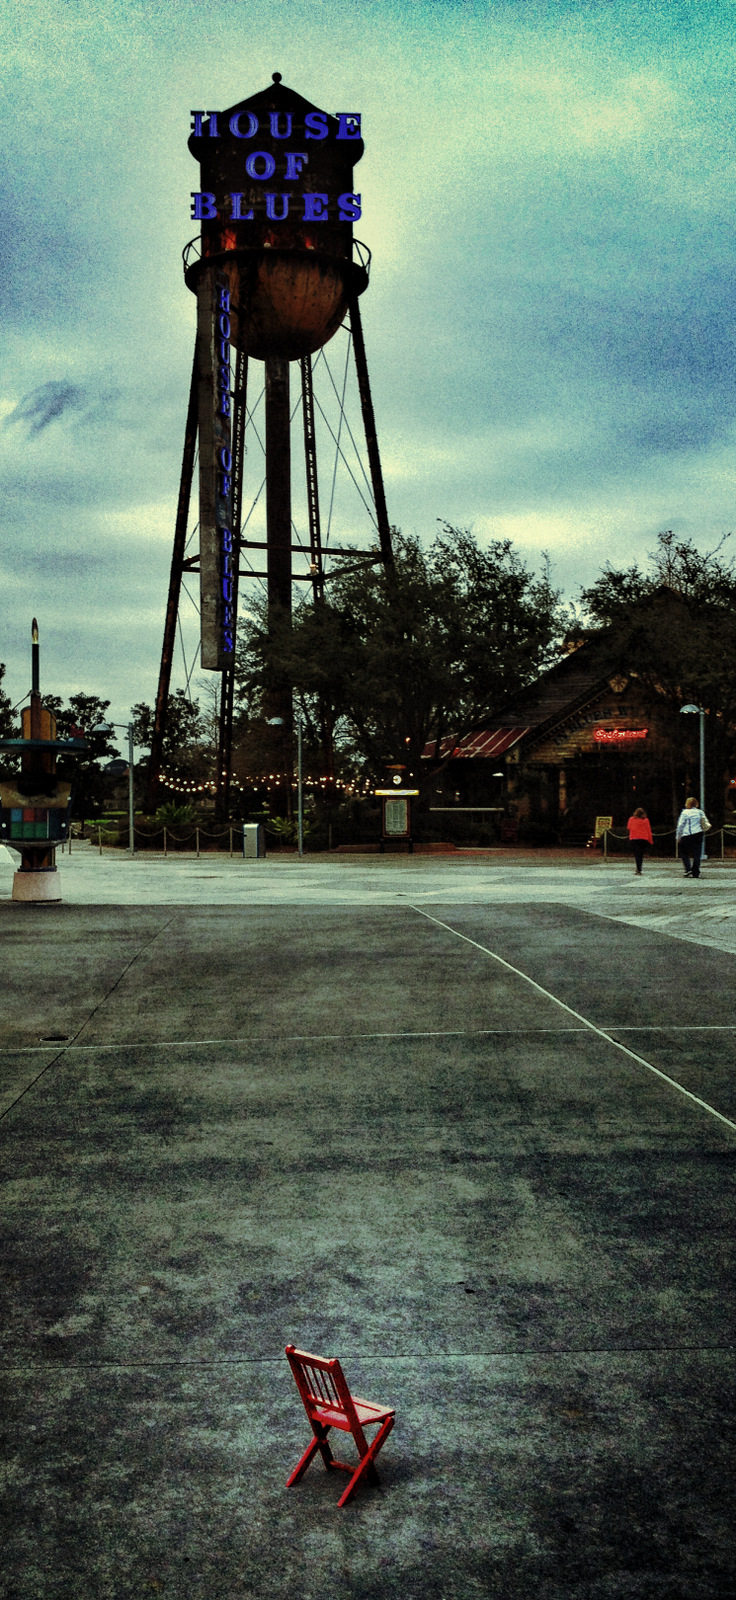 House of Blues — Downtown Disney, Florida (1/17/13)